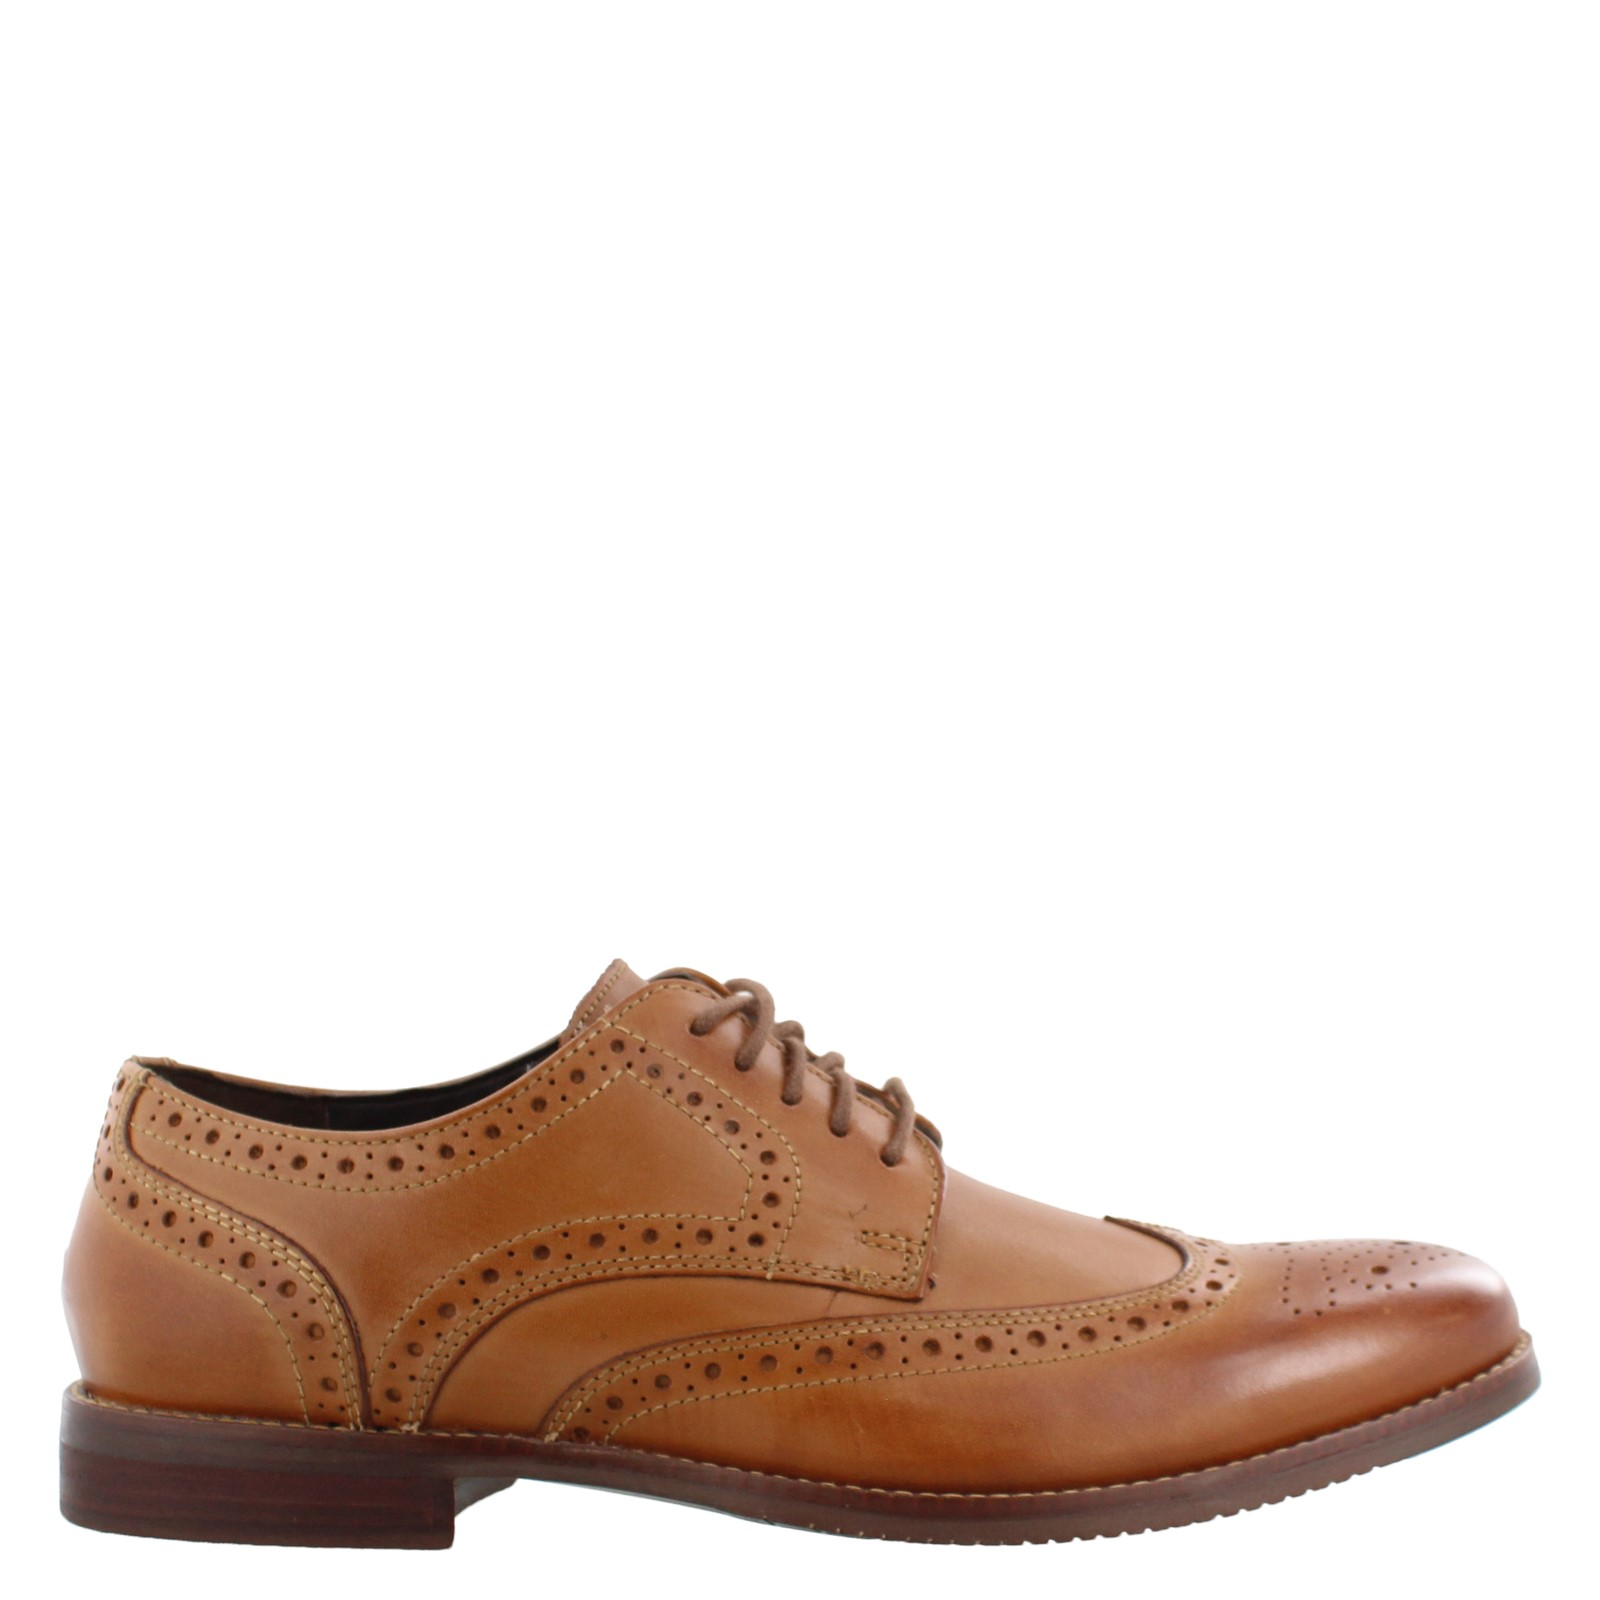 Men's Rockport, Symon Wingtip Oxford